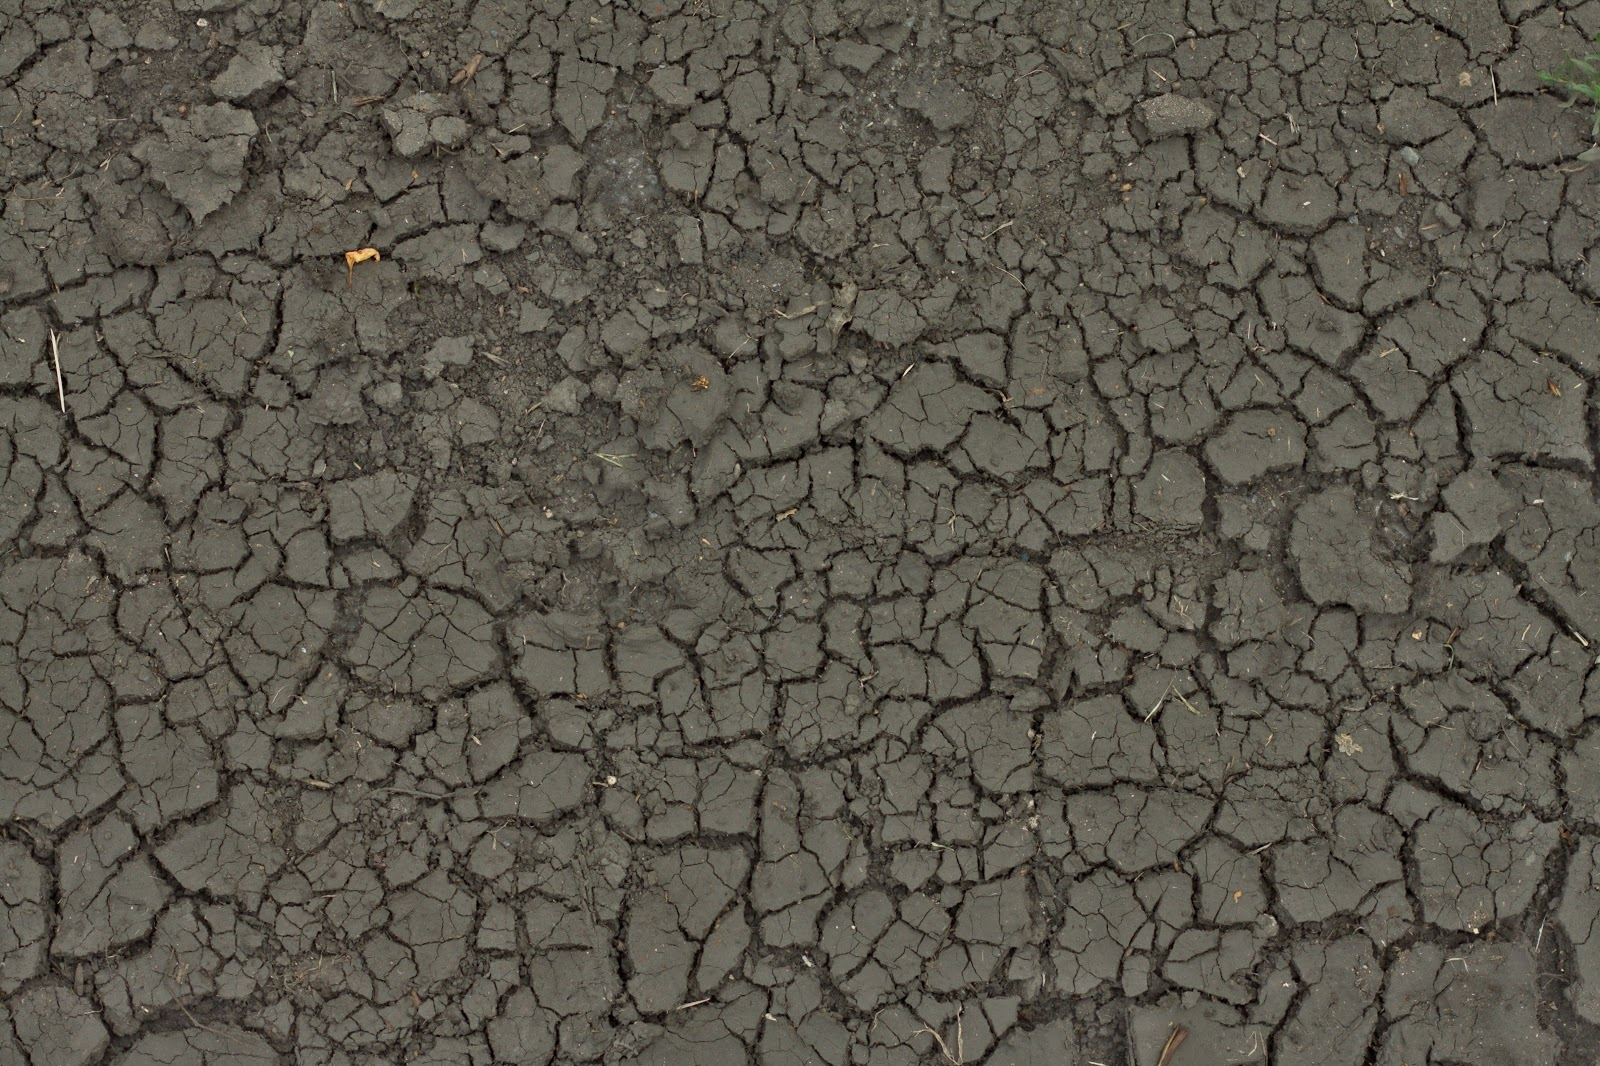 Mud cracked dirt soil ground texture ver 1